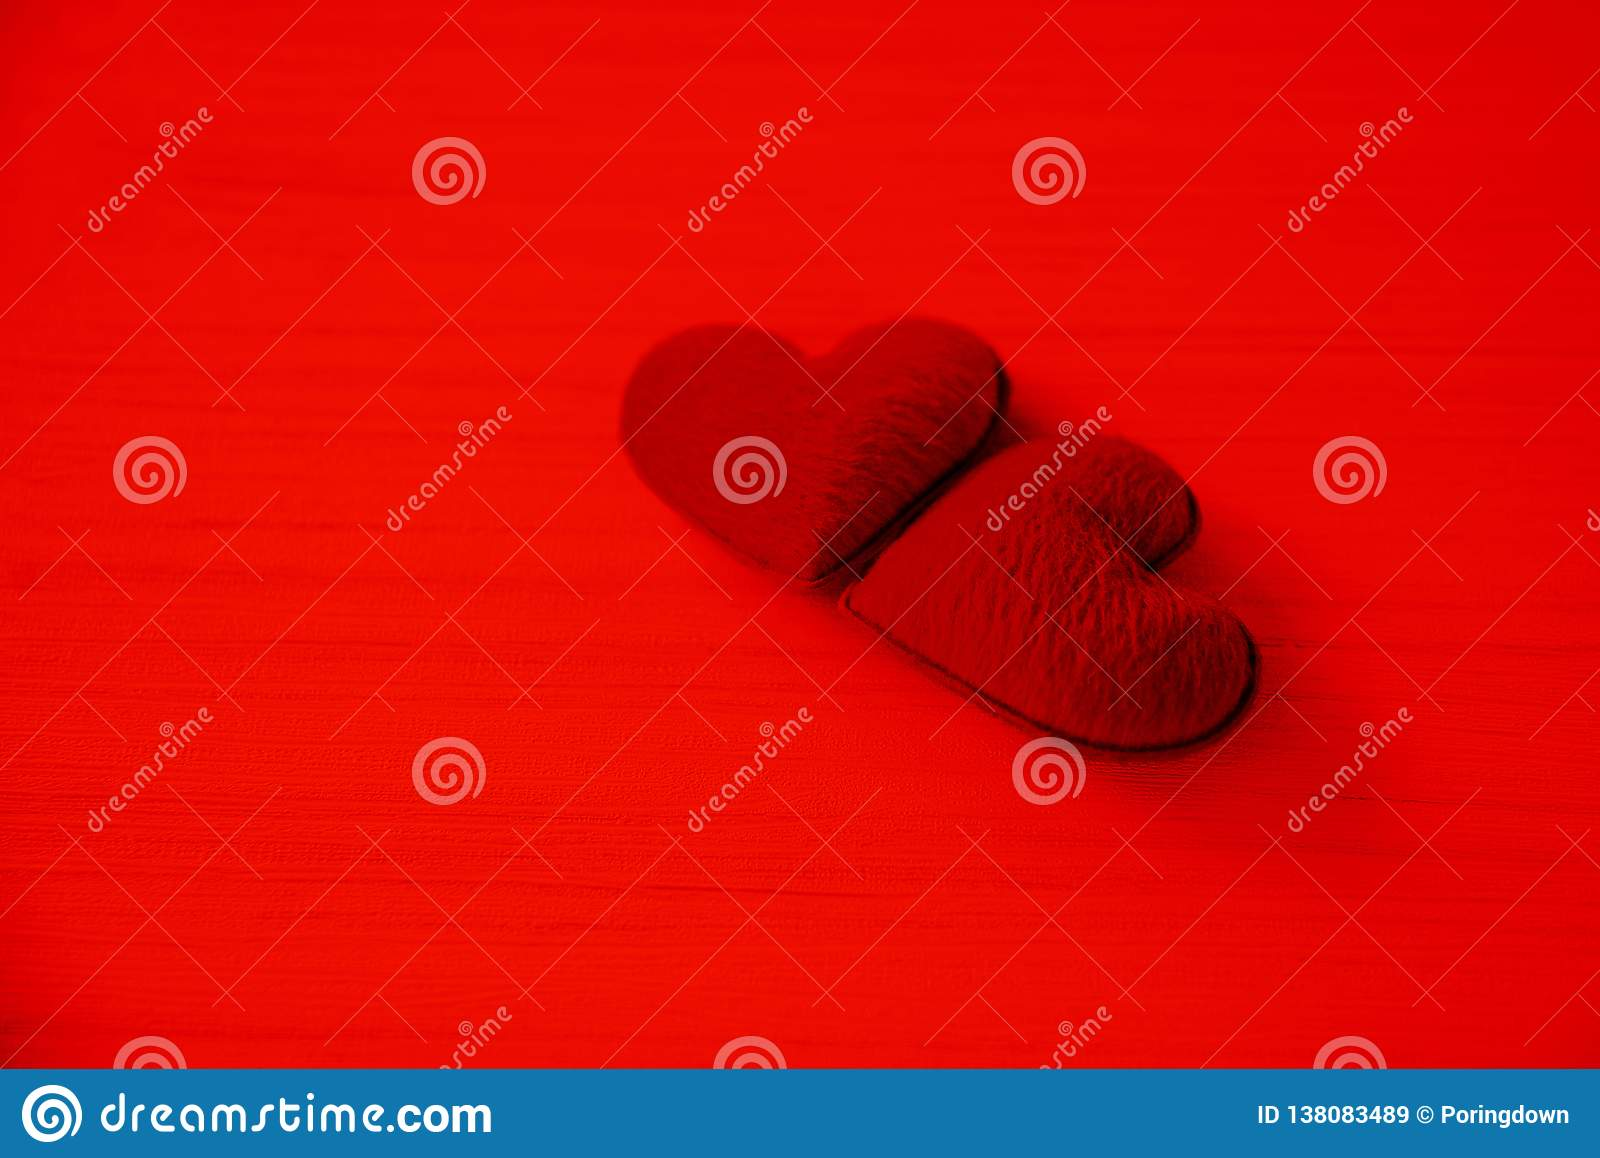 Valentines day love heart romantic concept Couple red heart decorated on red background